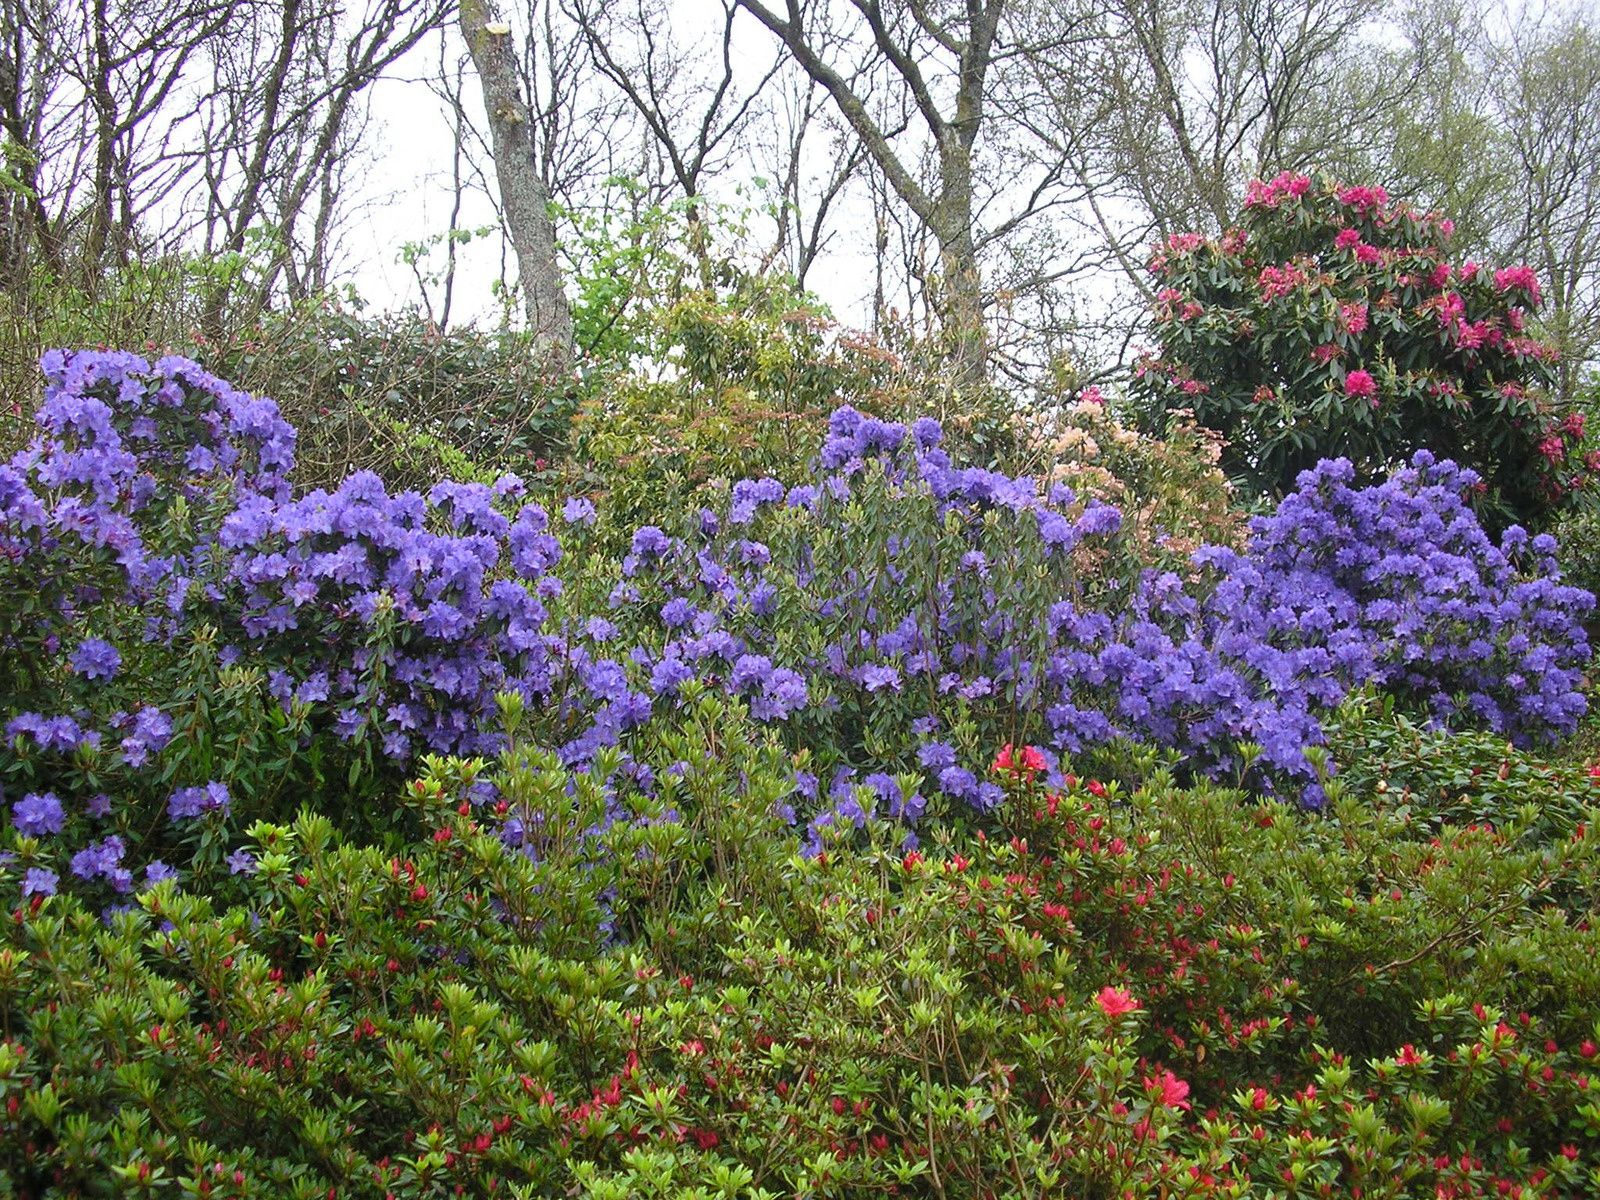 Les rhododendrons